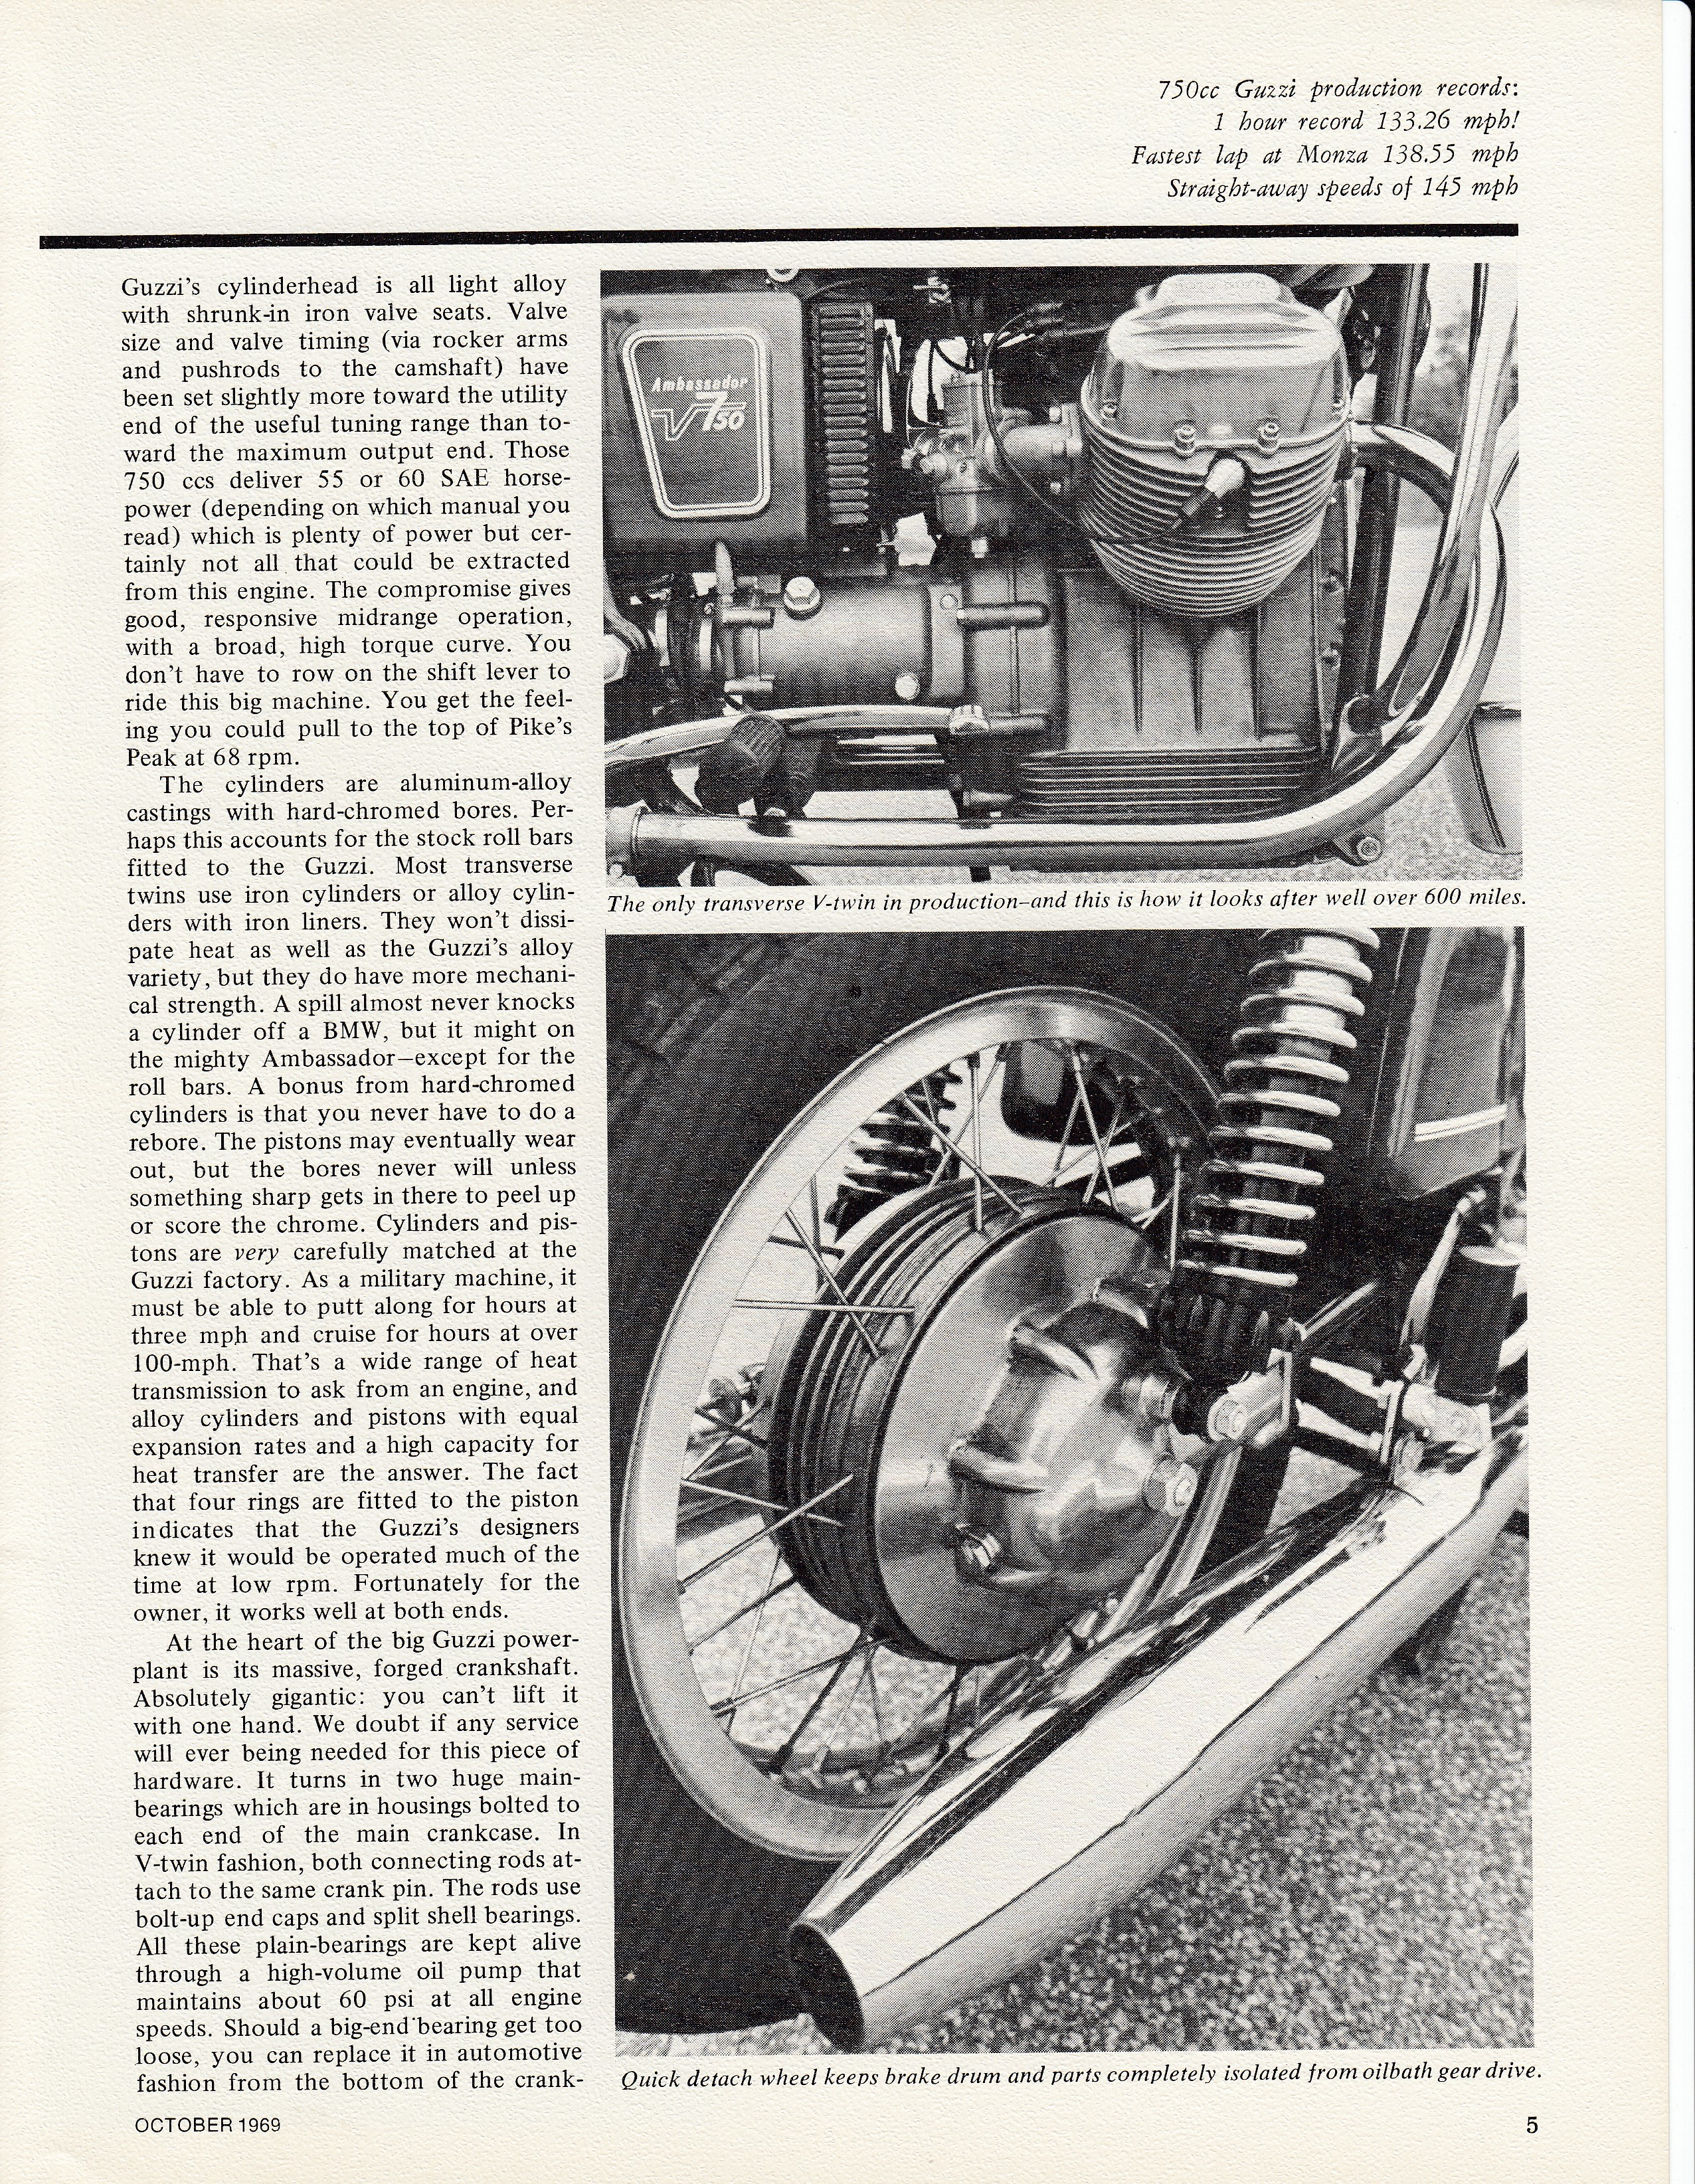 Moto Guzzi Ambassador factory brochure of magazine reviews, Page 5 of 16.